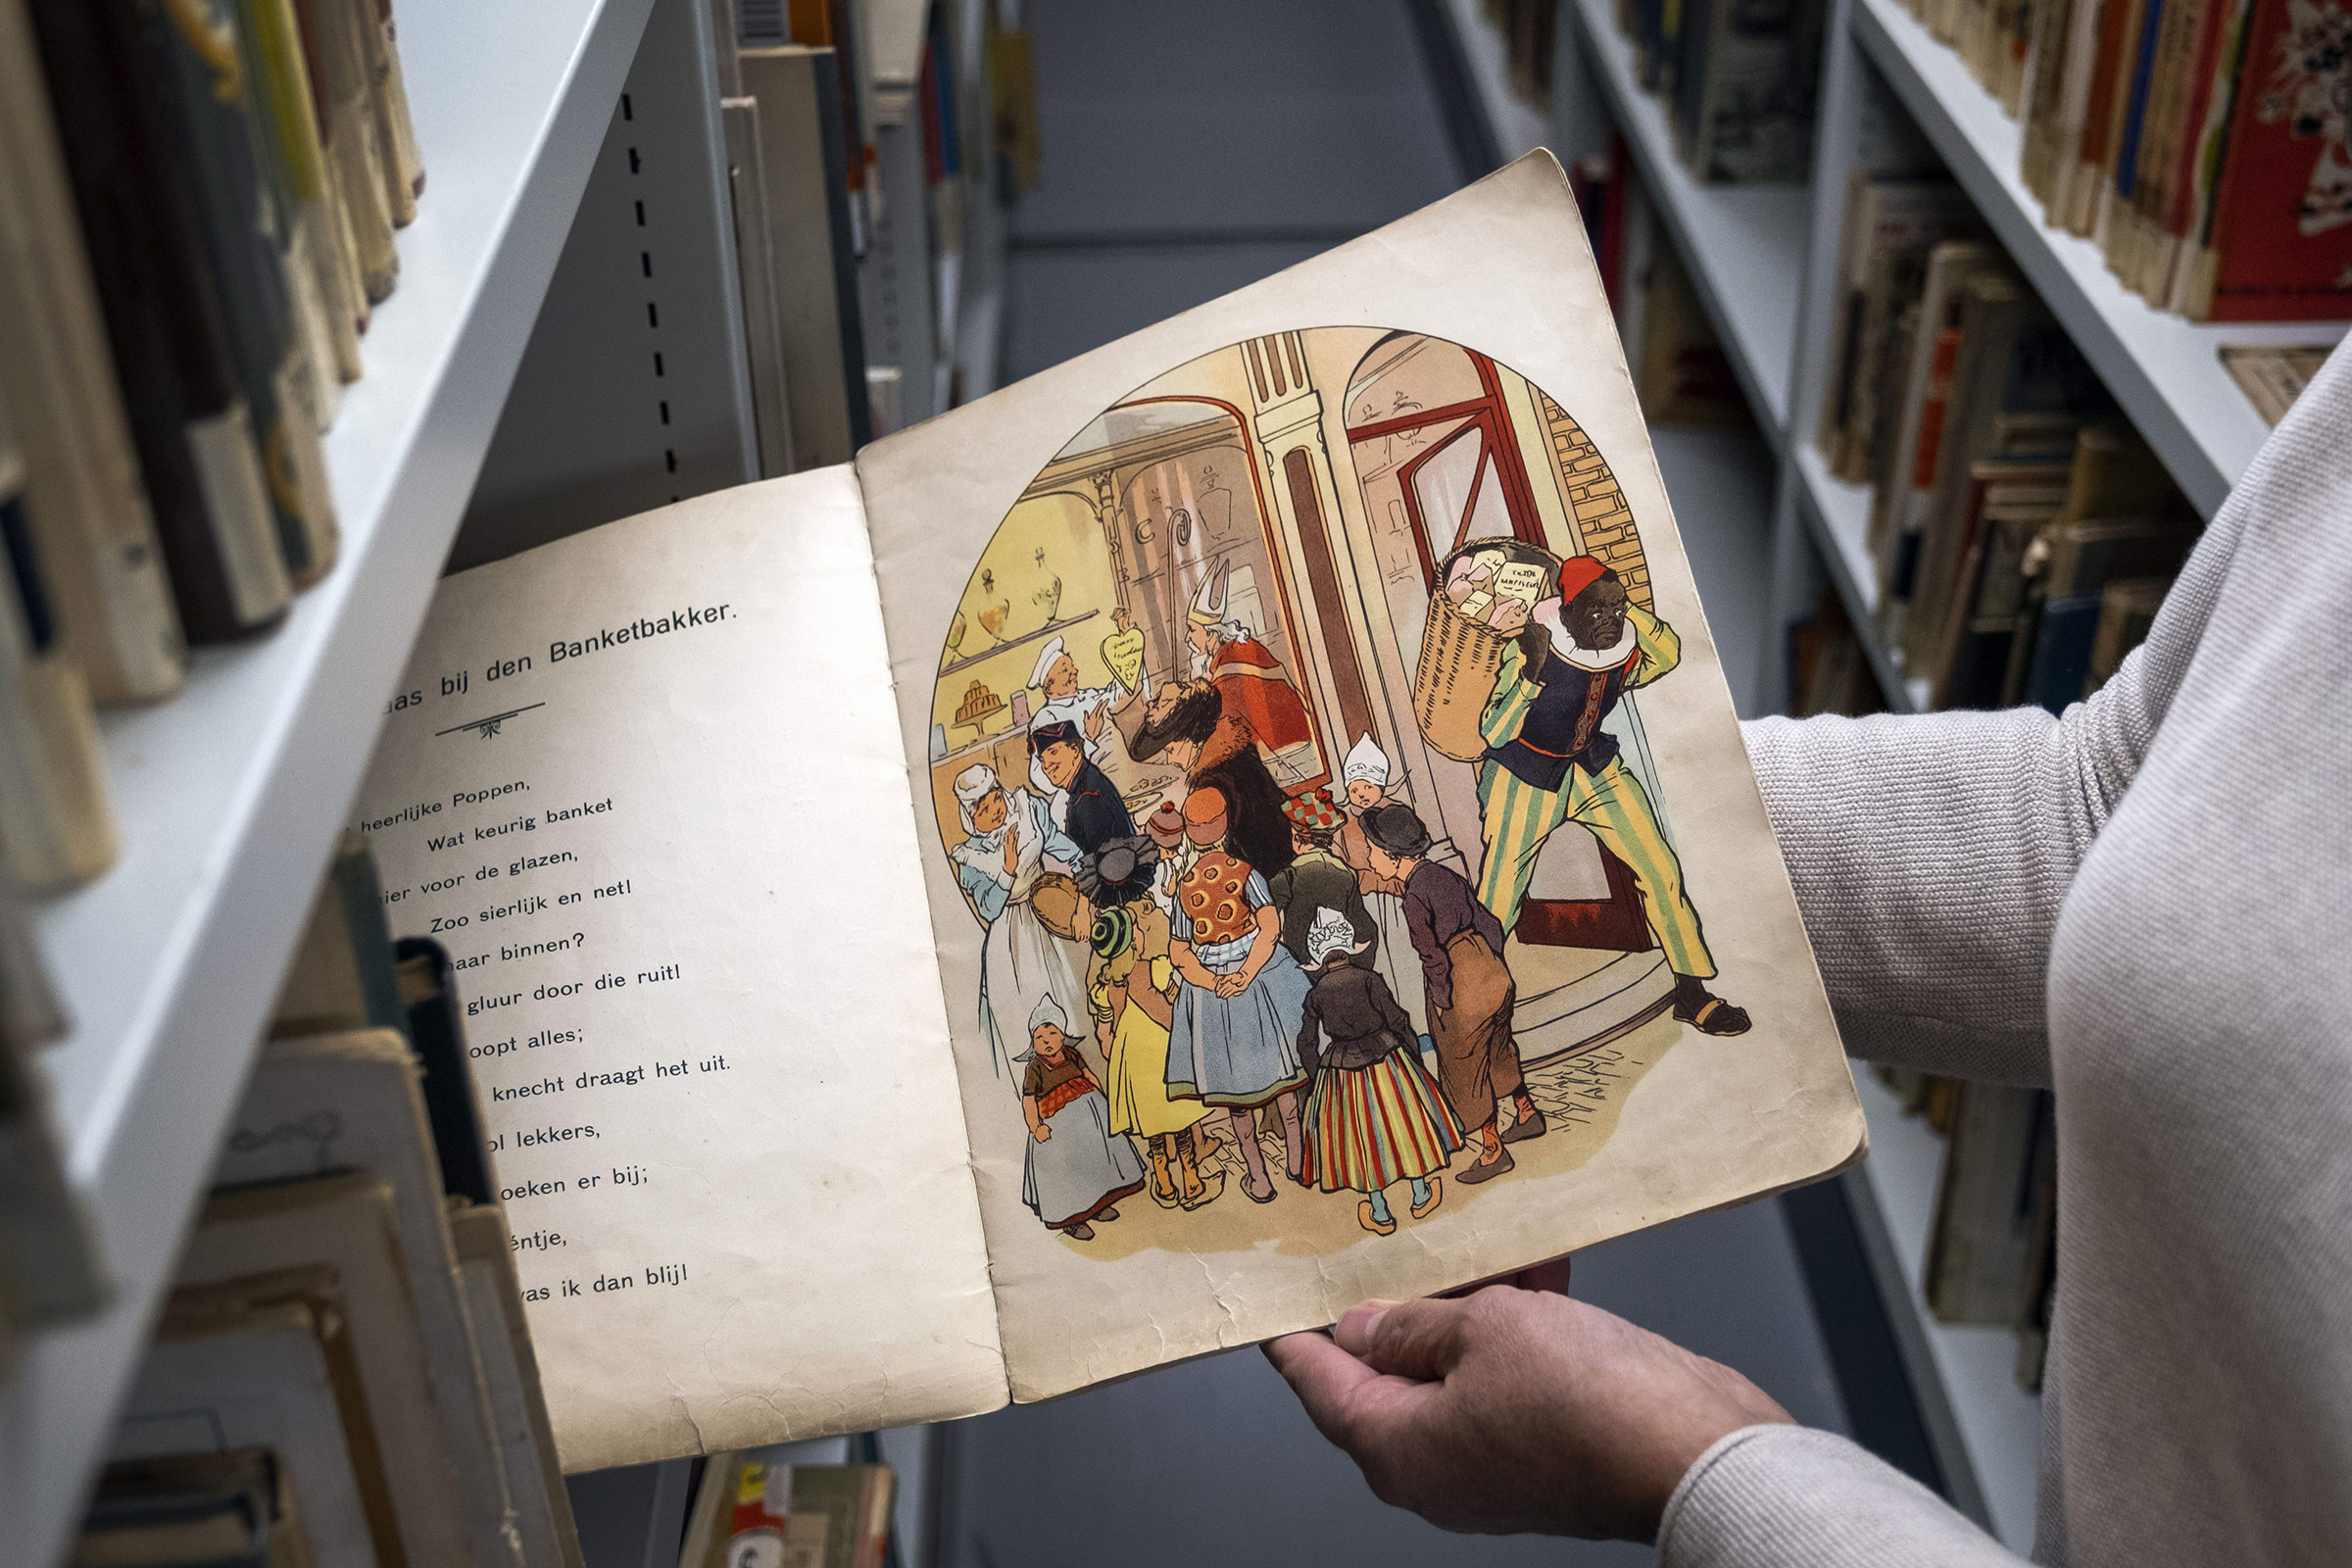 An Amsterdam Public Library employee with a book about Sinterklaas and Zwarte Piet (Black Pete) in Amsterdam, on Nov. 12, 2020.